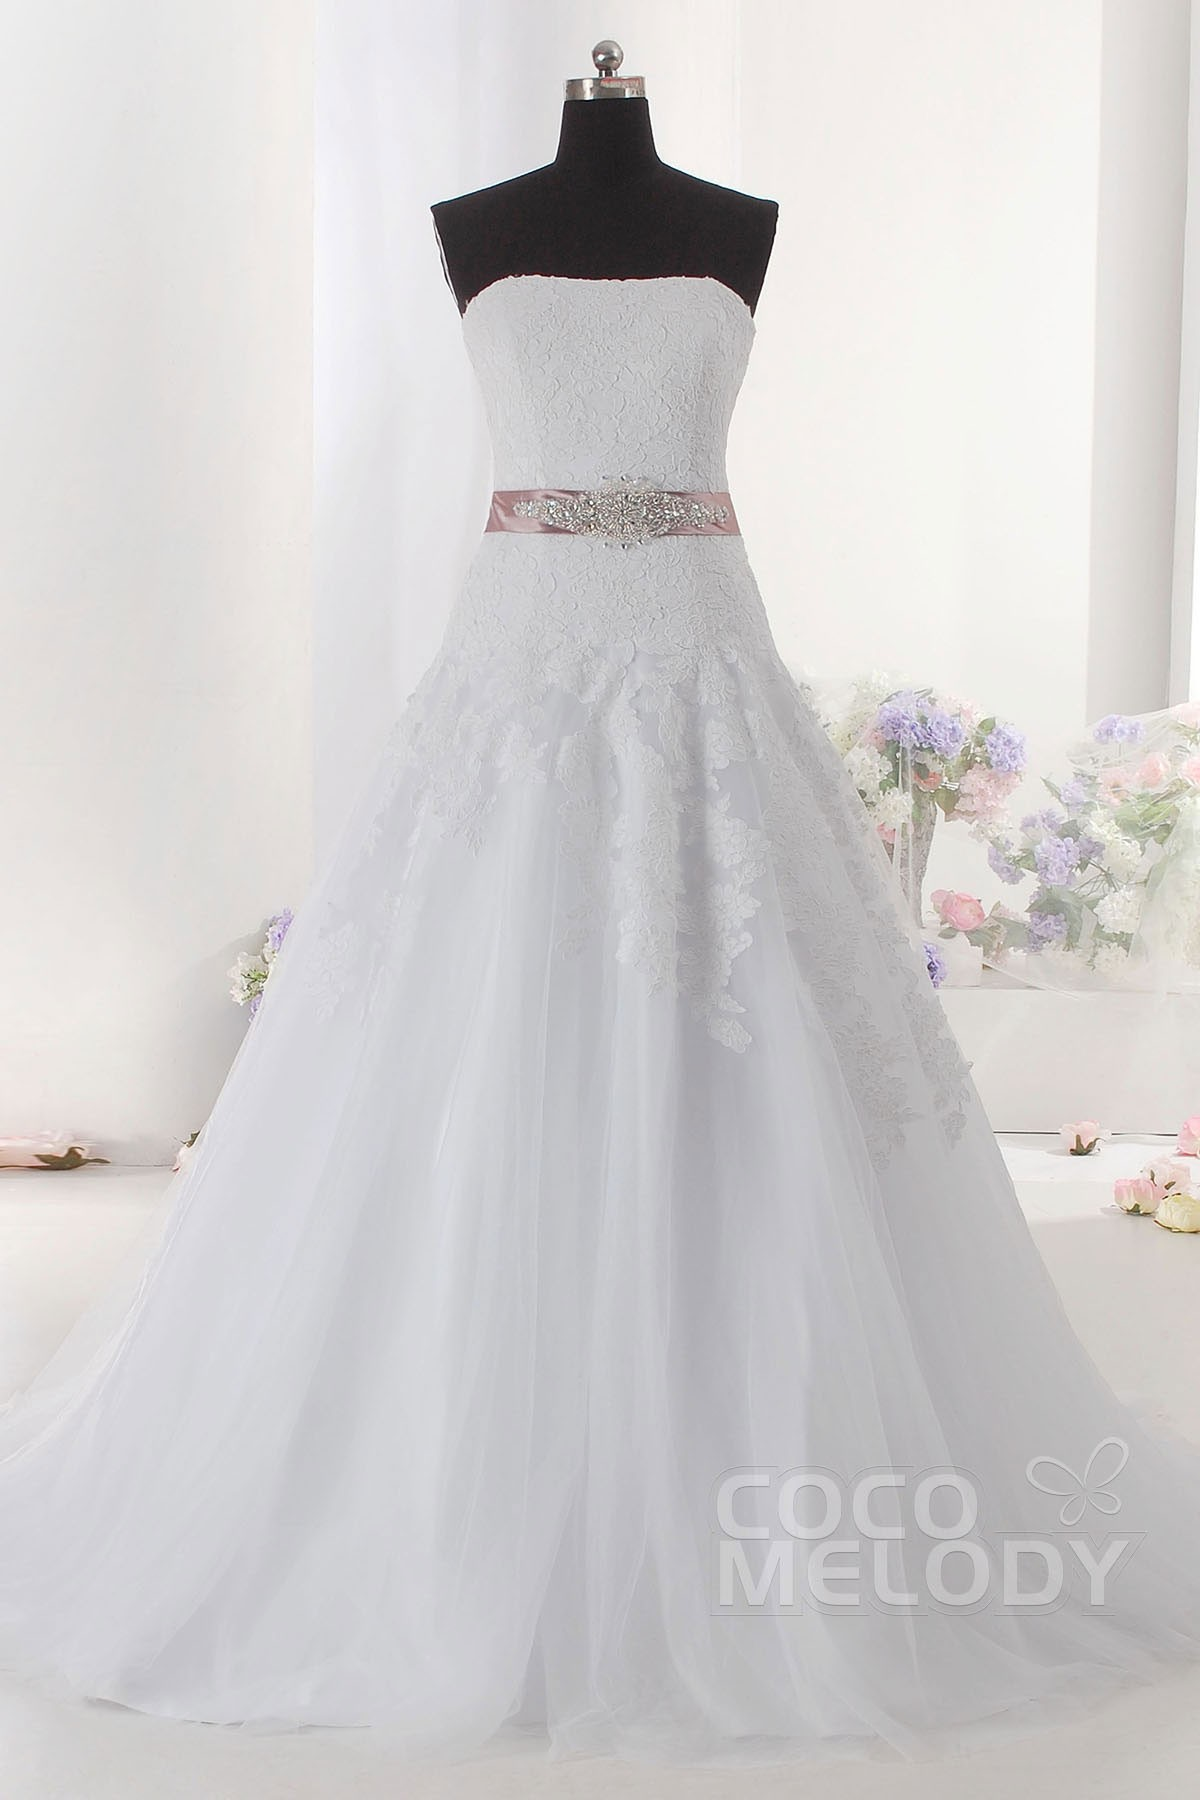 Divine A-Line Strapless Train Tulle Sleeveless Lace up-Corset Wedding Dress with Sashes and Appliques CWLT14059